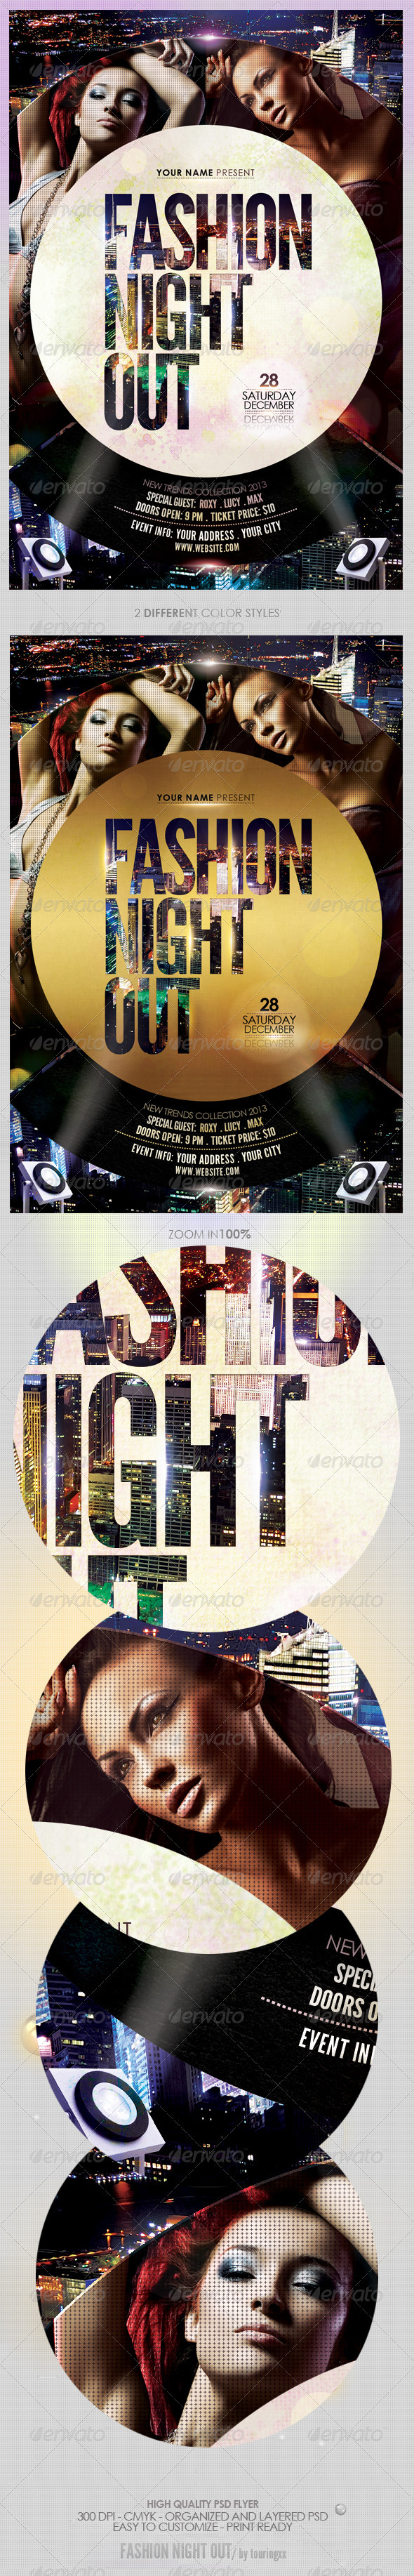 Fashion Night Out Flyer Template - Clubs & Parties Events